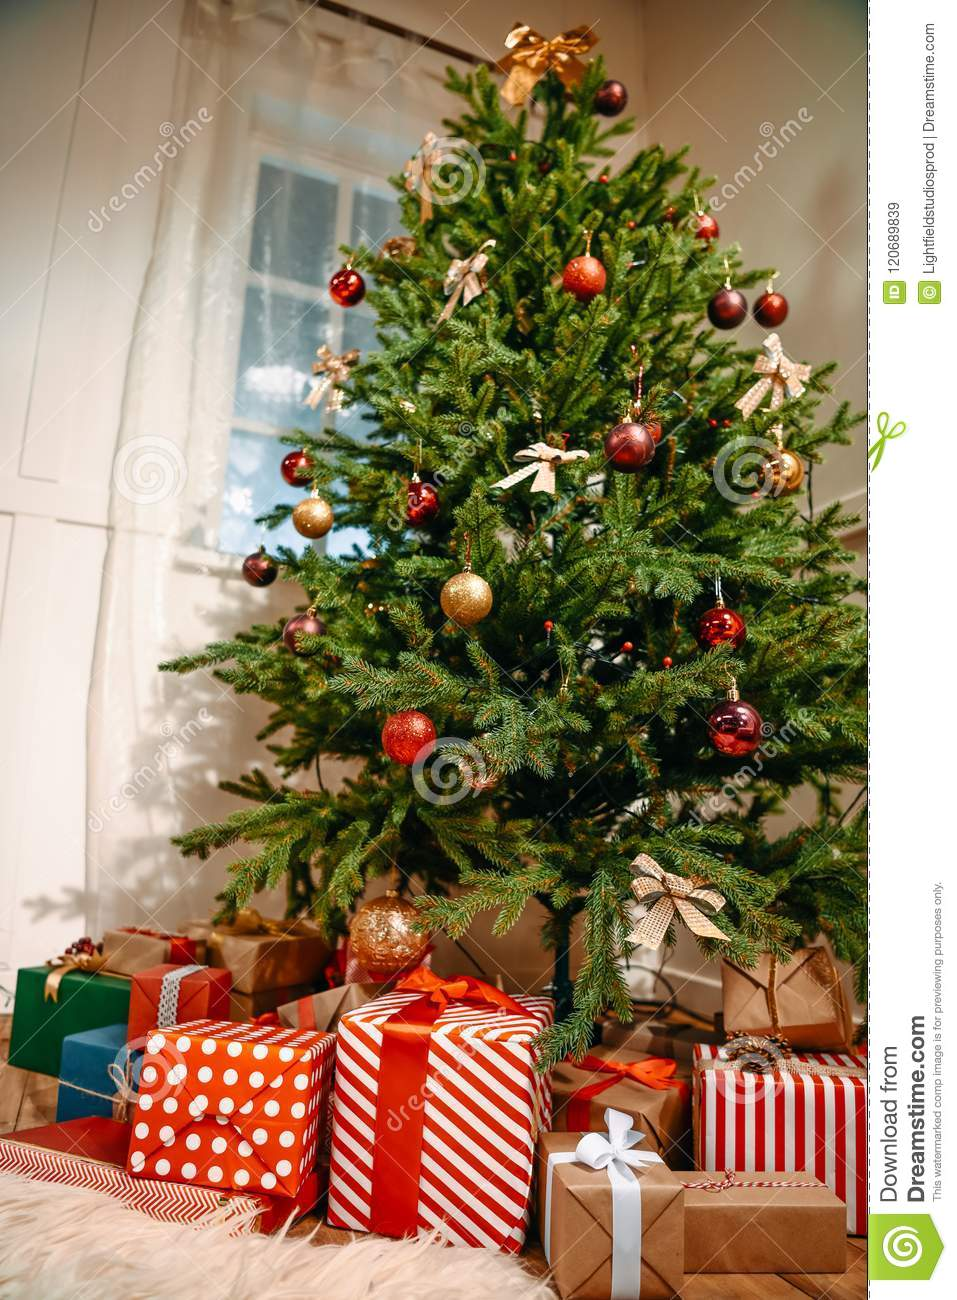 download bottom view of beautiful decorated christmas tree stock image image of presents decorated - Beautifully Decorated Christmas Tree Images